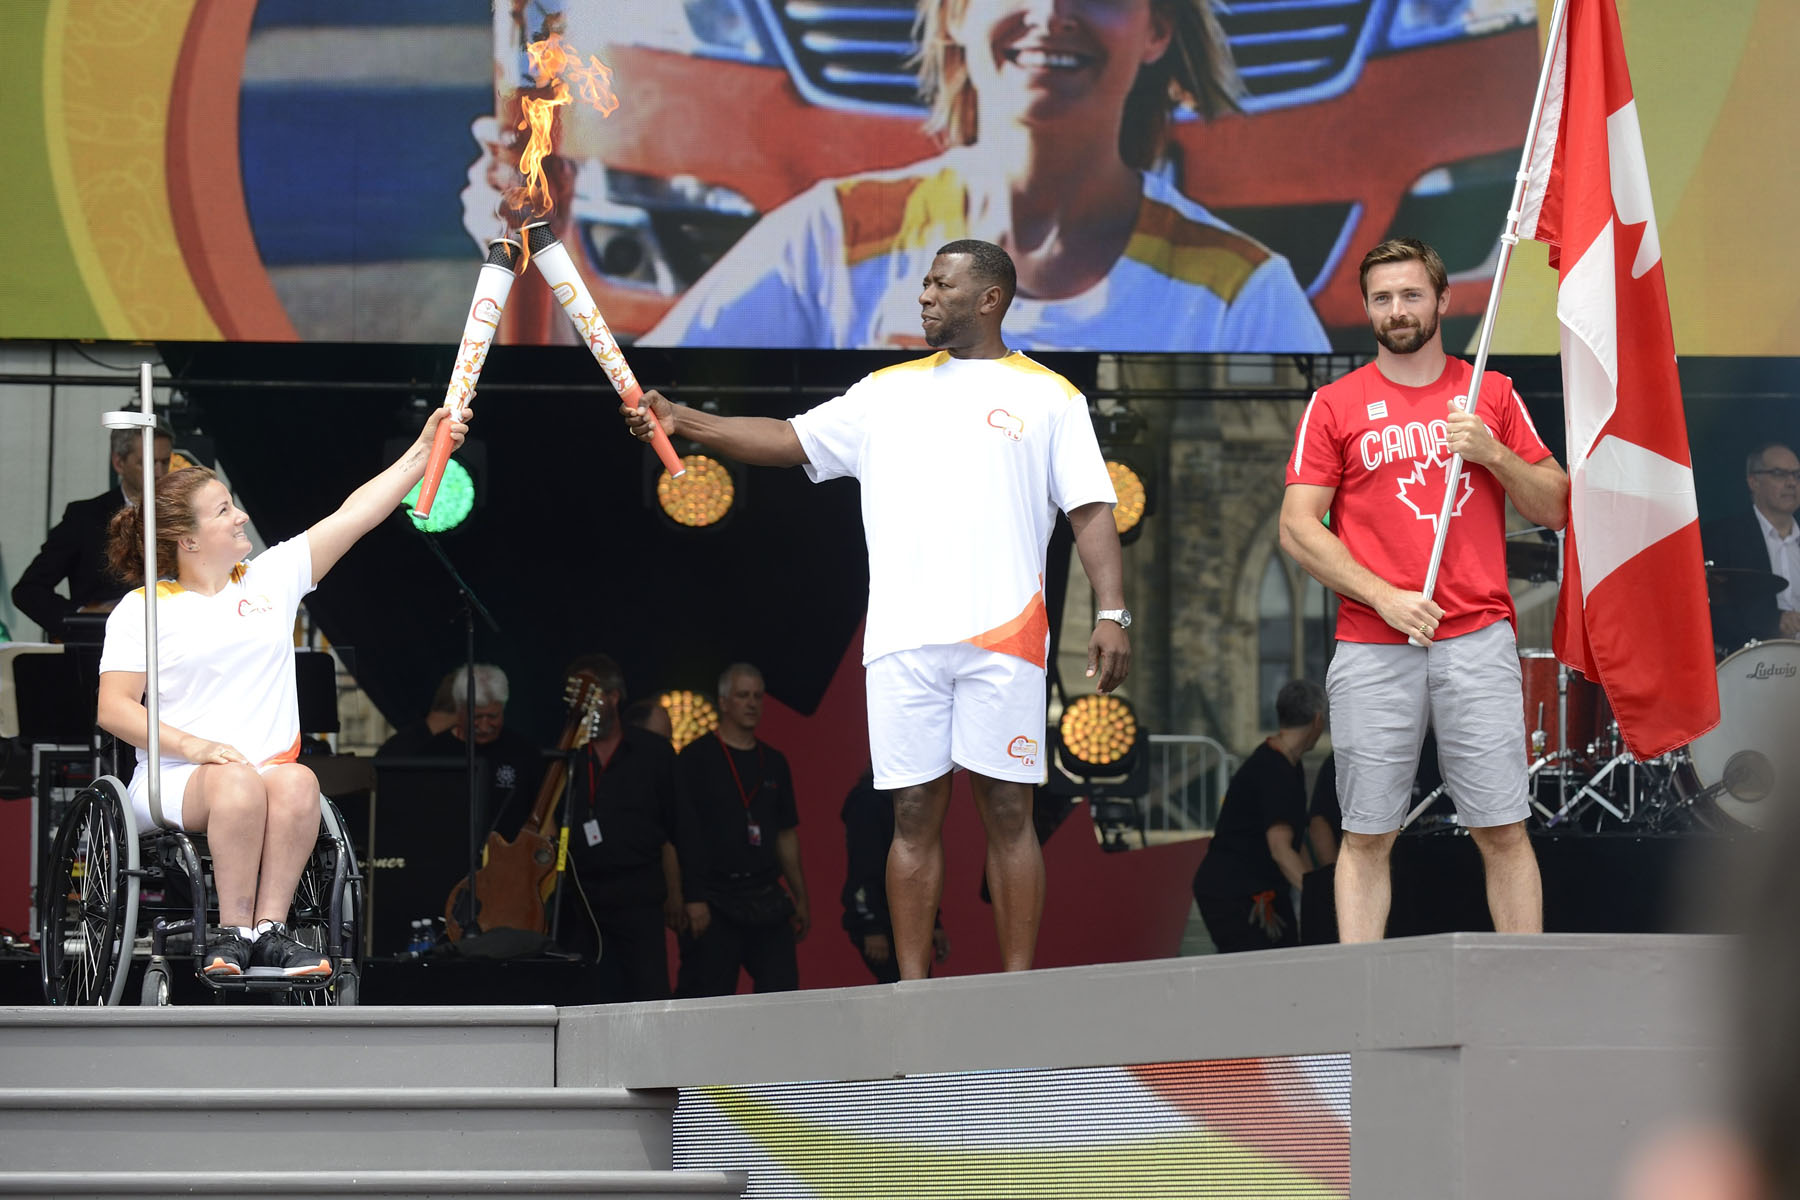 The 2015 Pan Am/Parapan Games Torch Relay was part of the show.